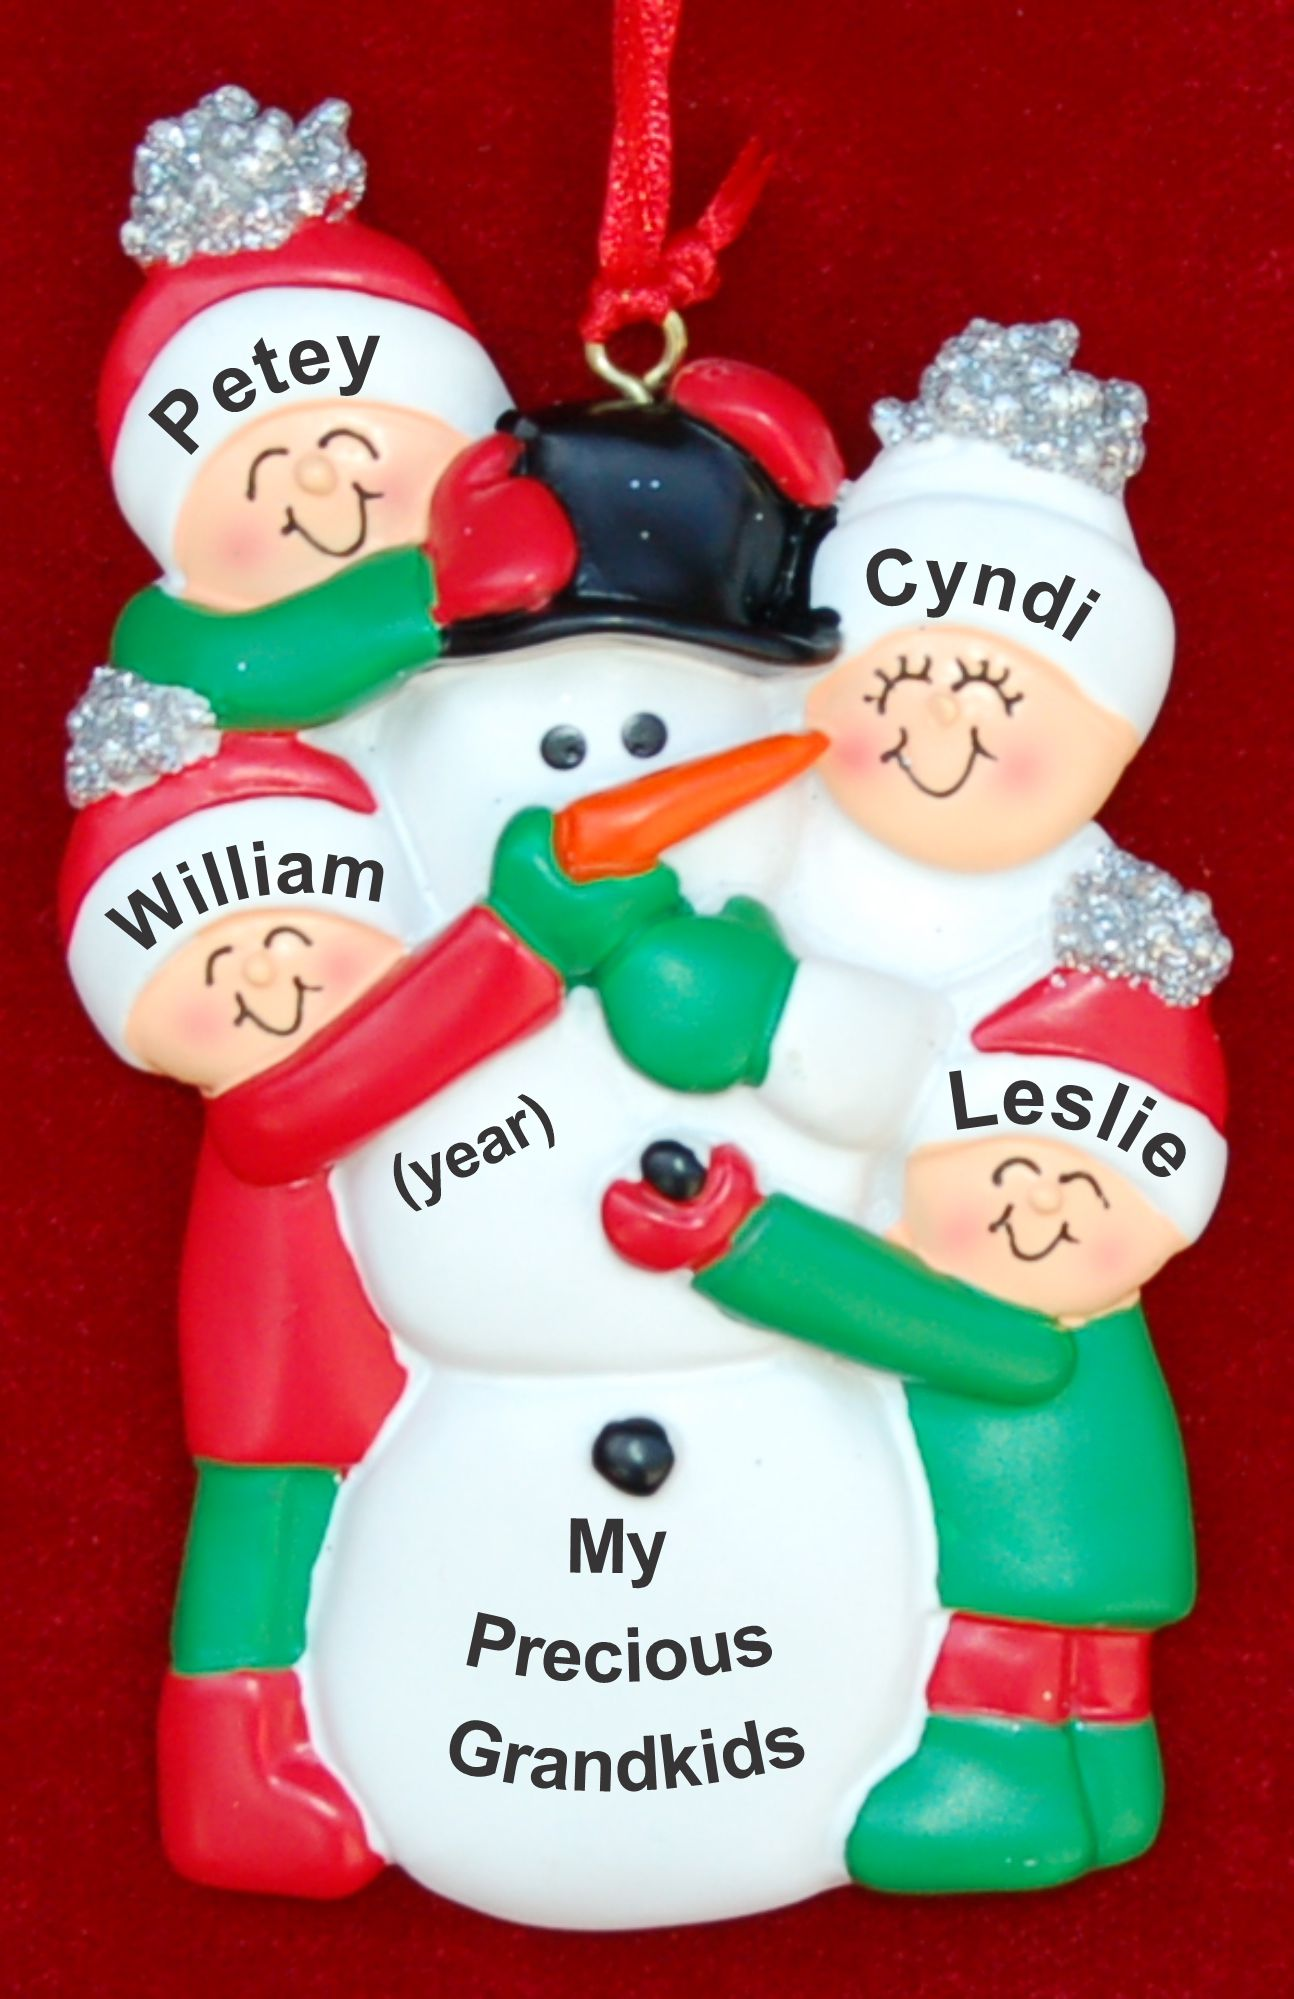 Grandparents Christmas Ornament Making Snowman 4 Grandkids by Russell Rhodes